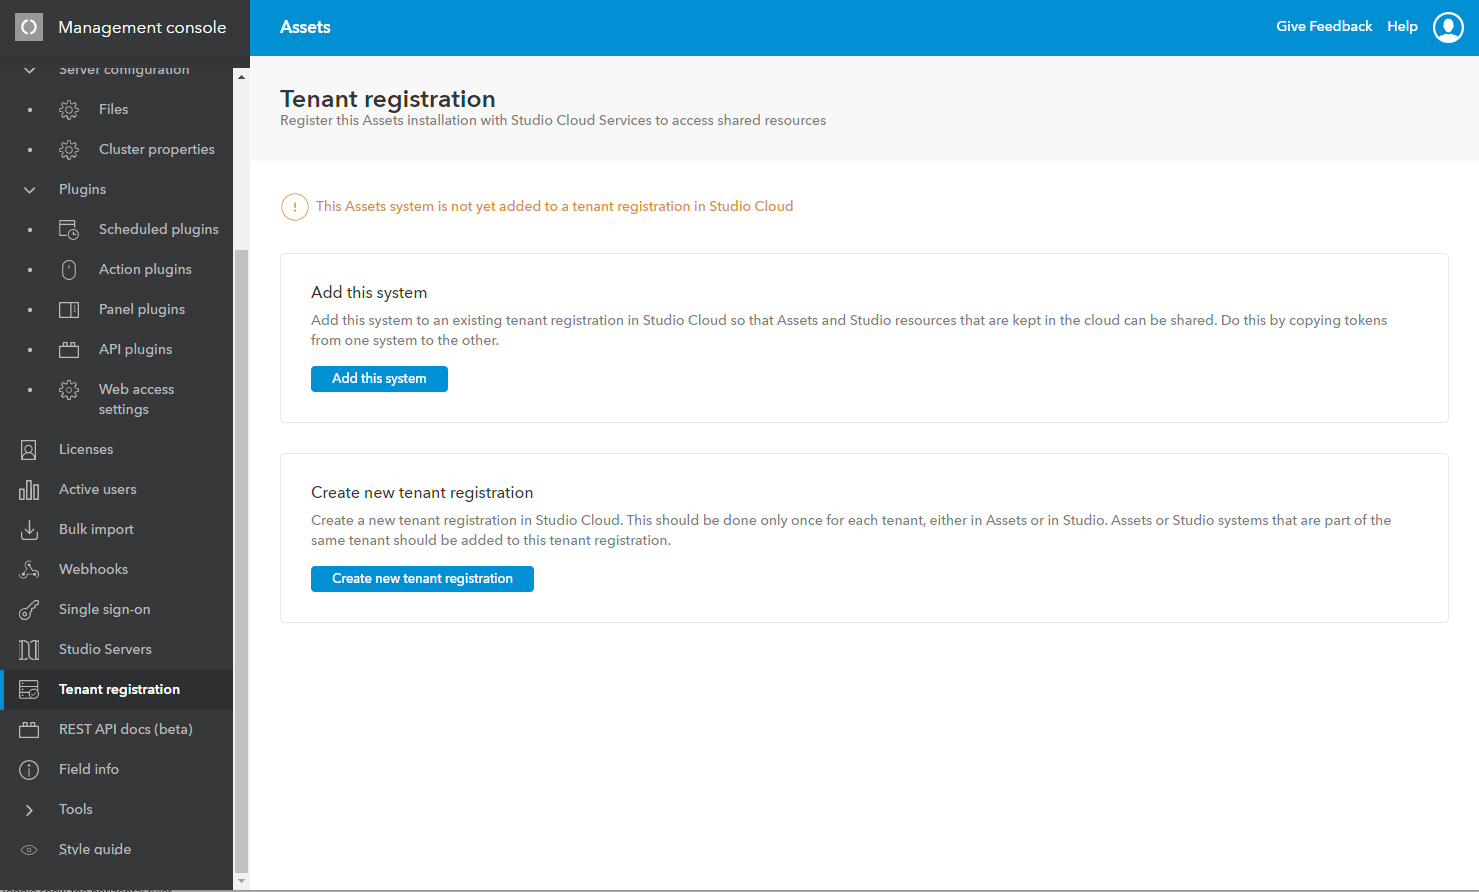 The Tenant registration page in the Management Console of Assets Server